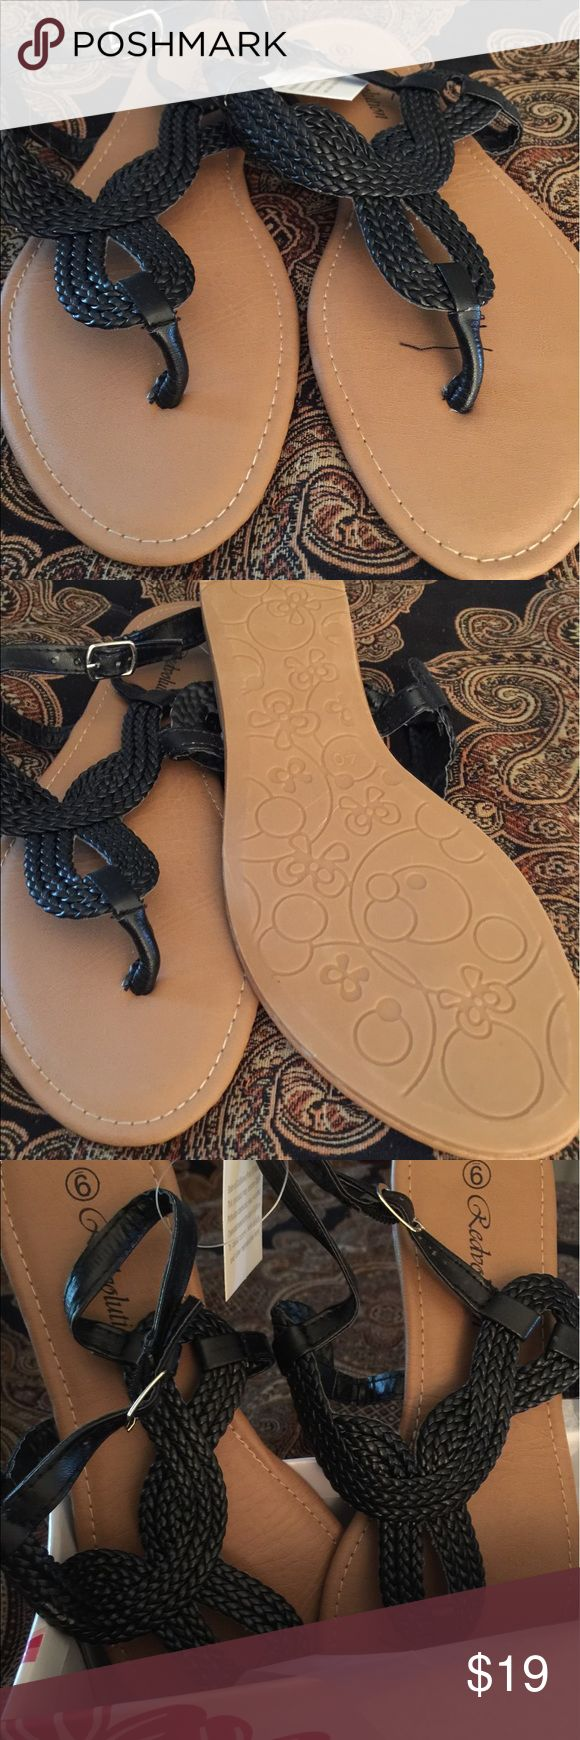 New in box ...Gladiator Flat Sandal ...size 10 New in box item...Gladiator Flat Sandal..T-Strap... durable TPR outsole and soft PU insole...braided upper T-Strap...size 10..run true to size... Shoes Sandals